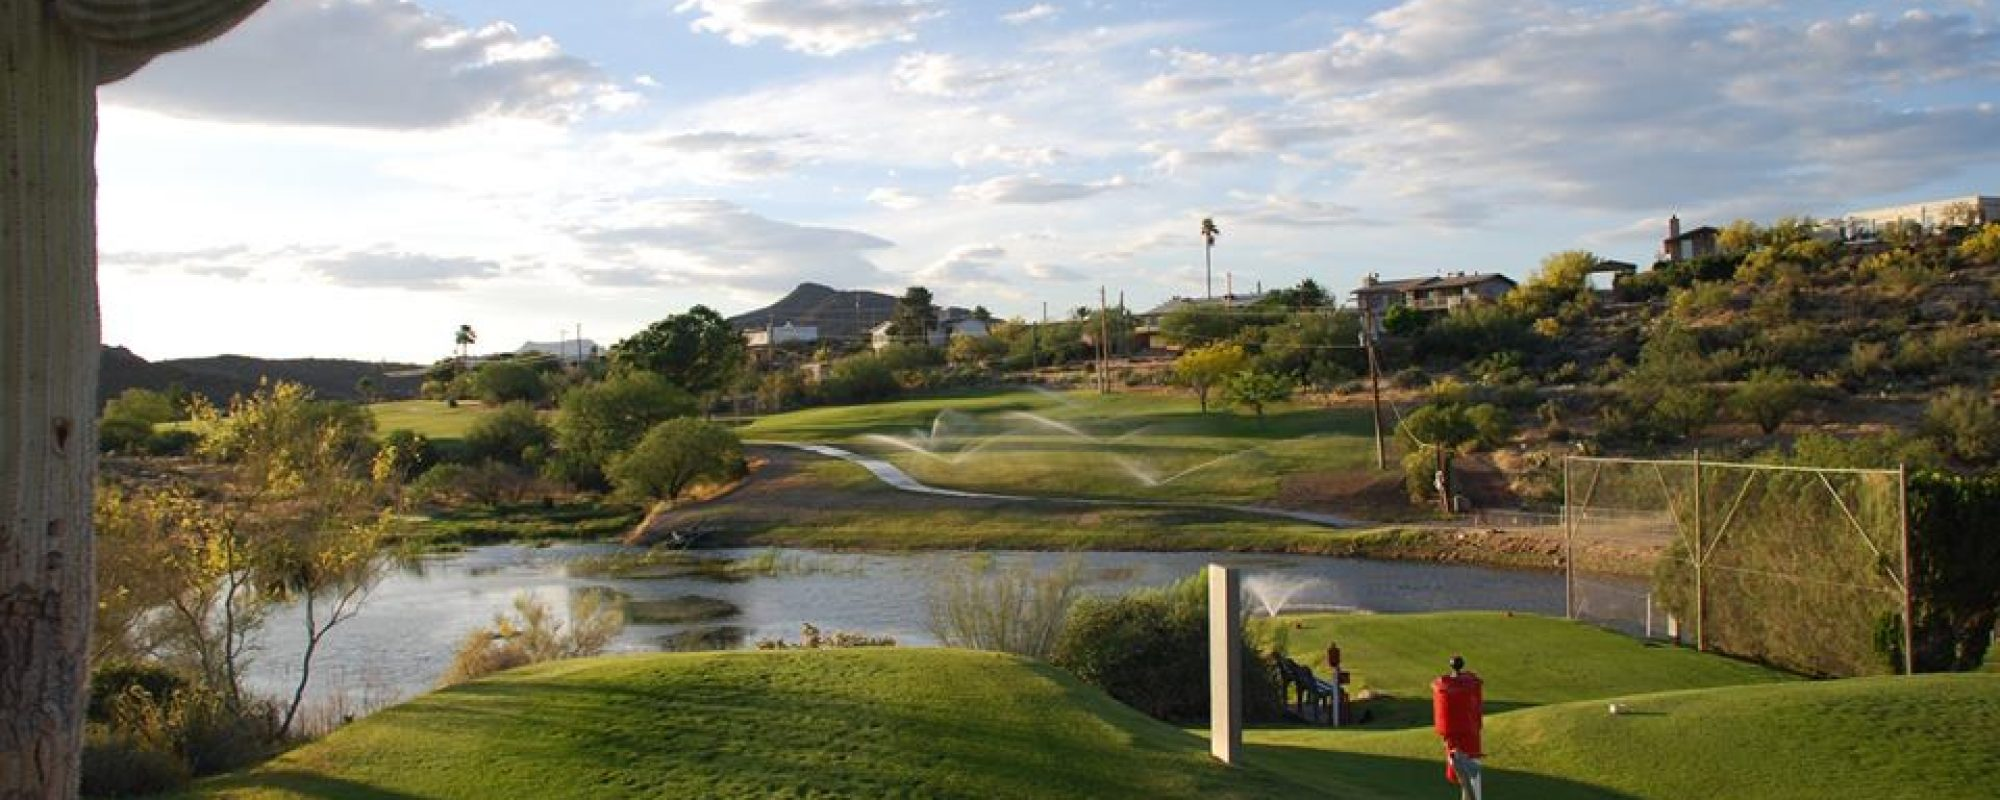 Queen Valley Golf Course – beautiful golf course in Queen Valley ...